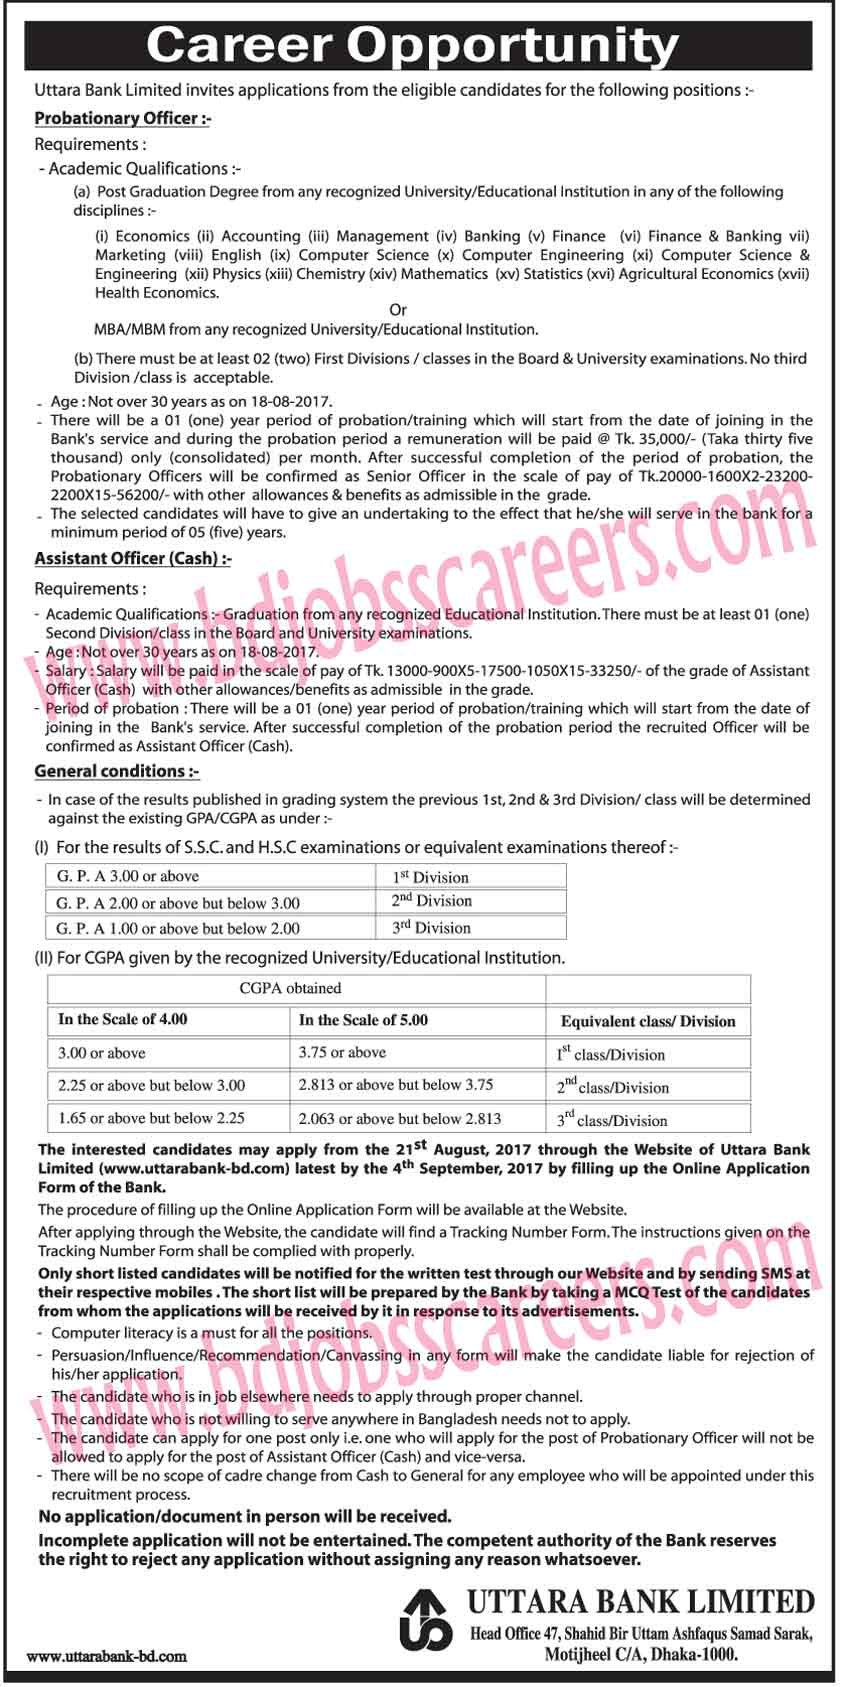 Uttara Bank Limited Job Circular 2017